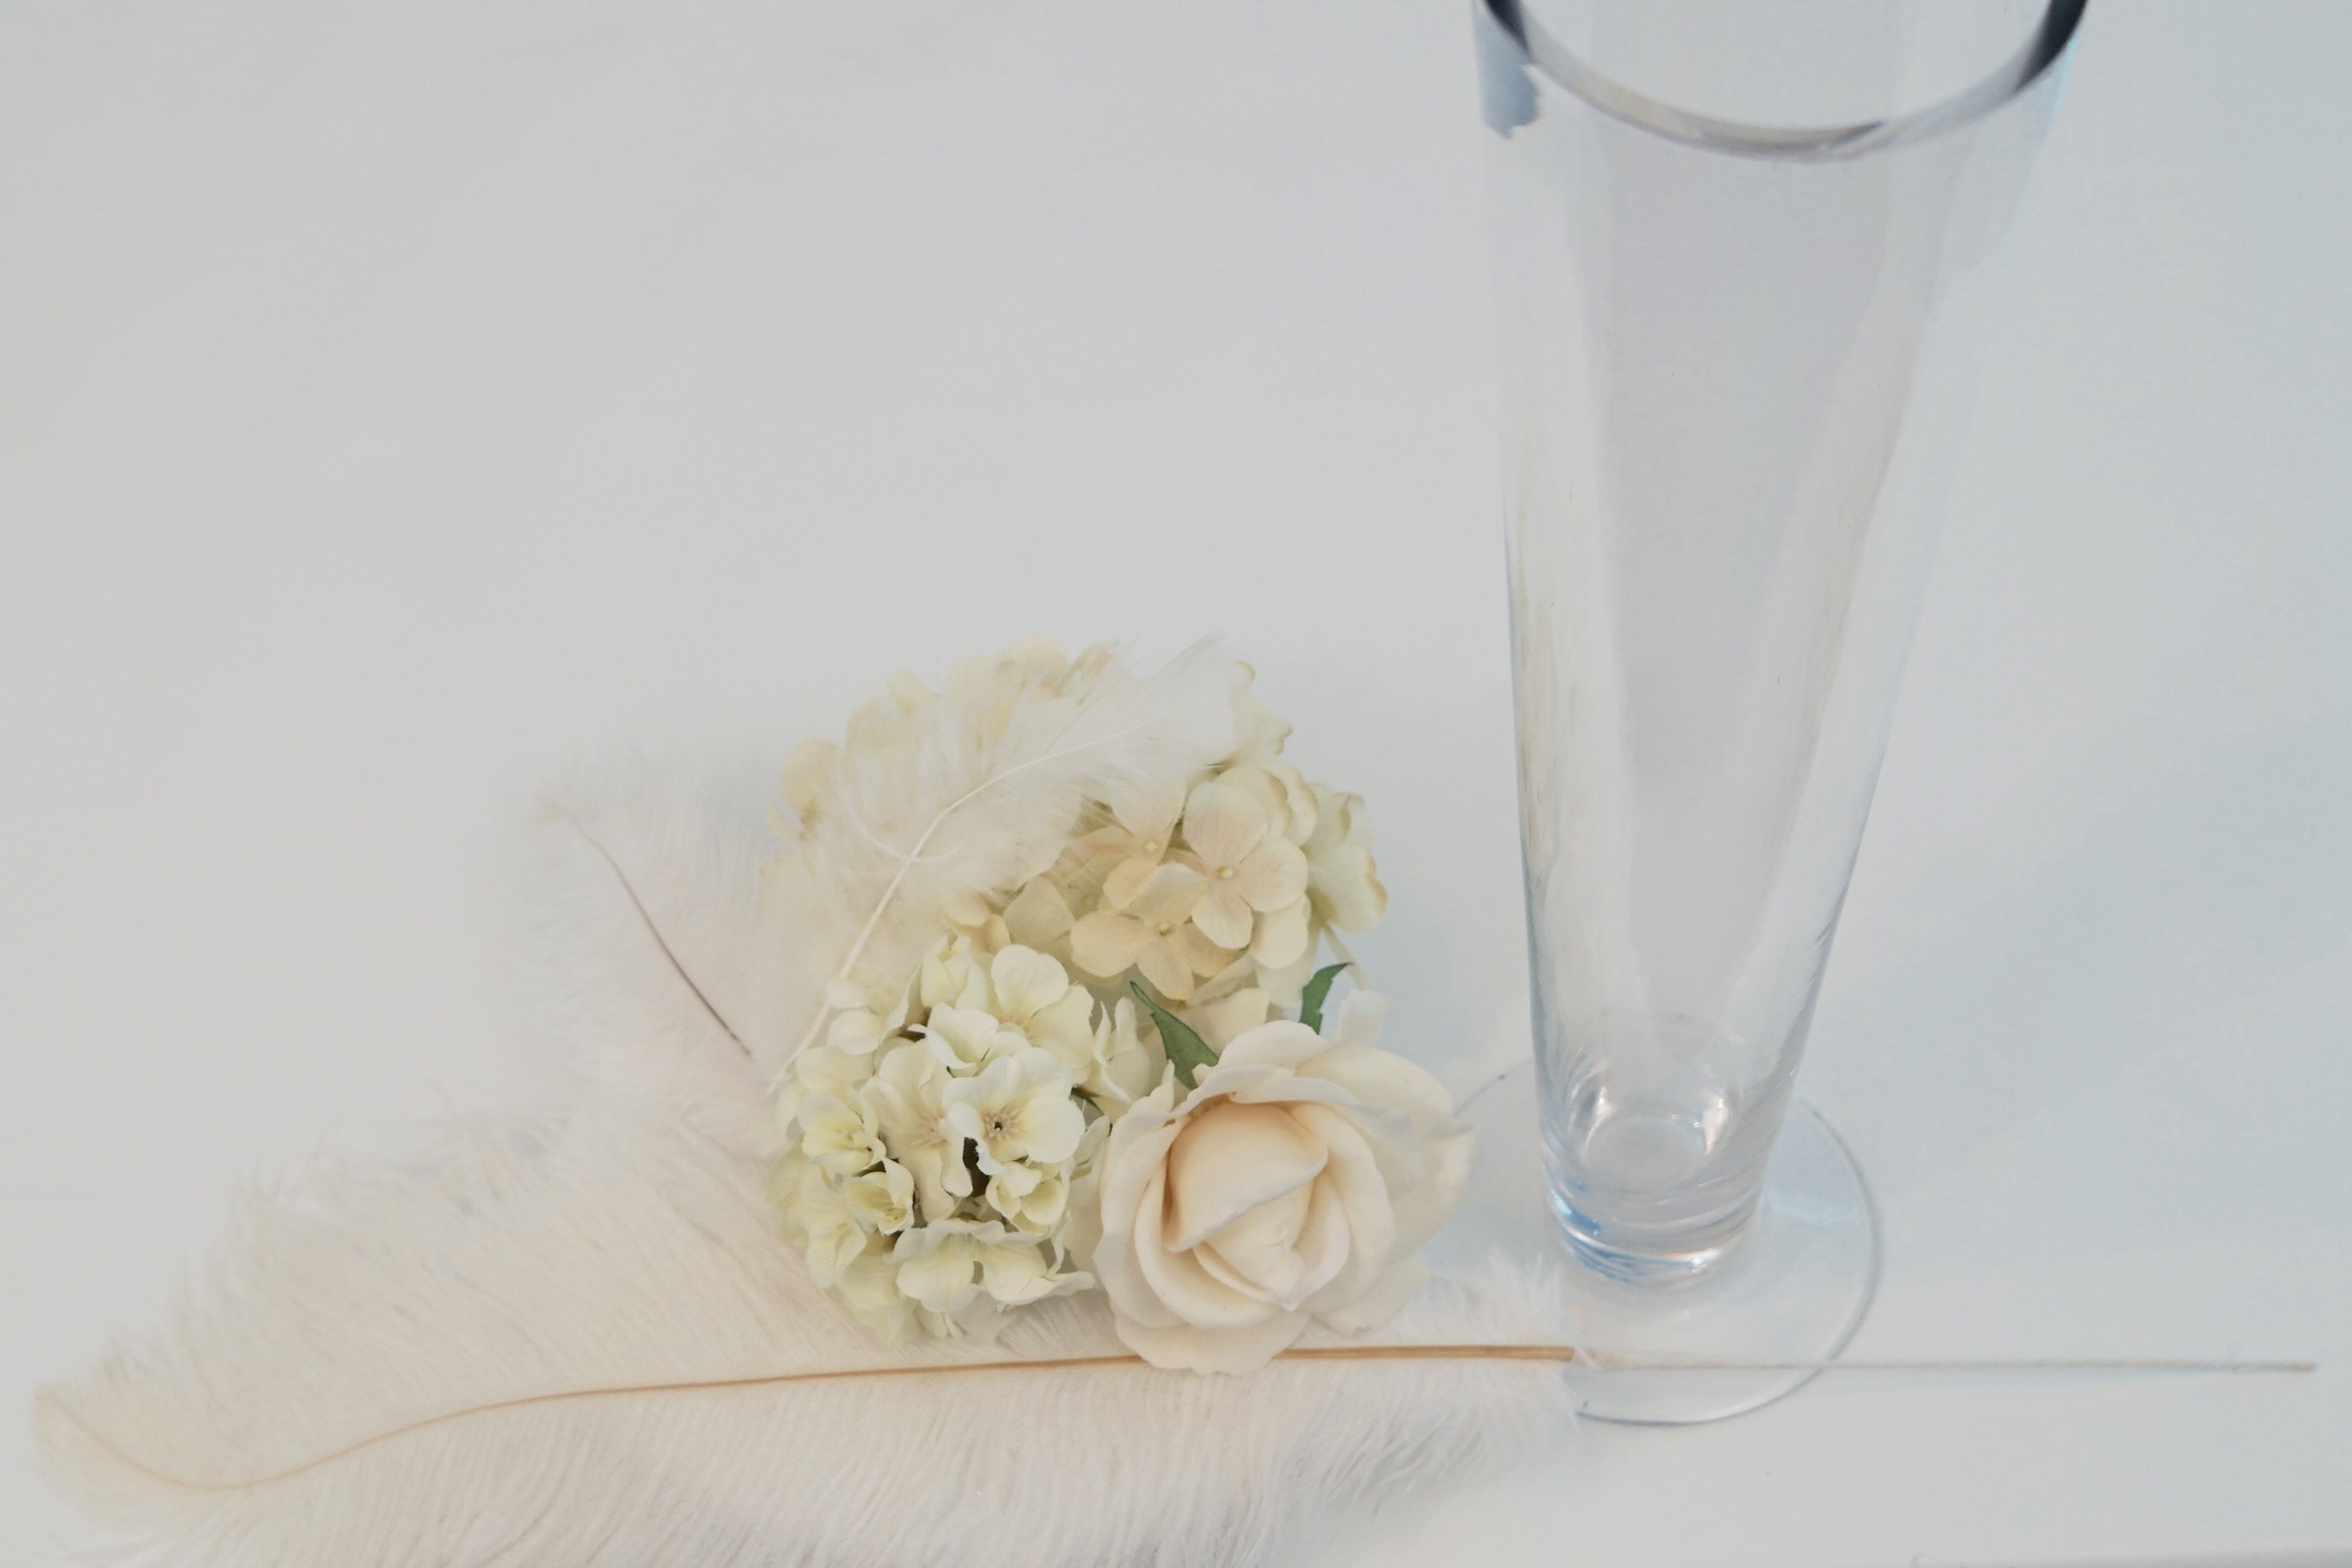 Roaring 20s   Great Gatsby-Inspired Feather Wedding Centerpiece